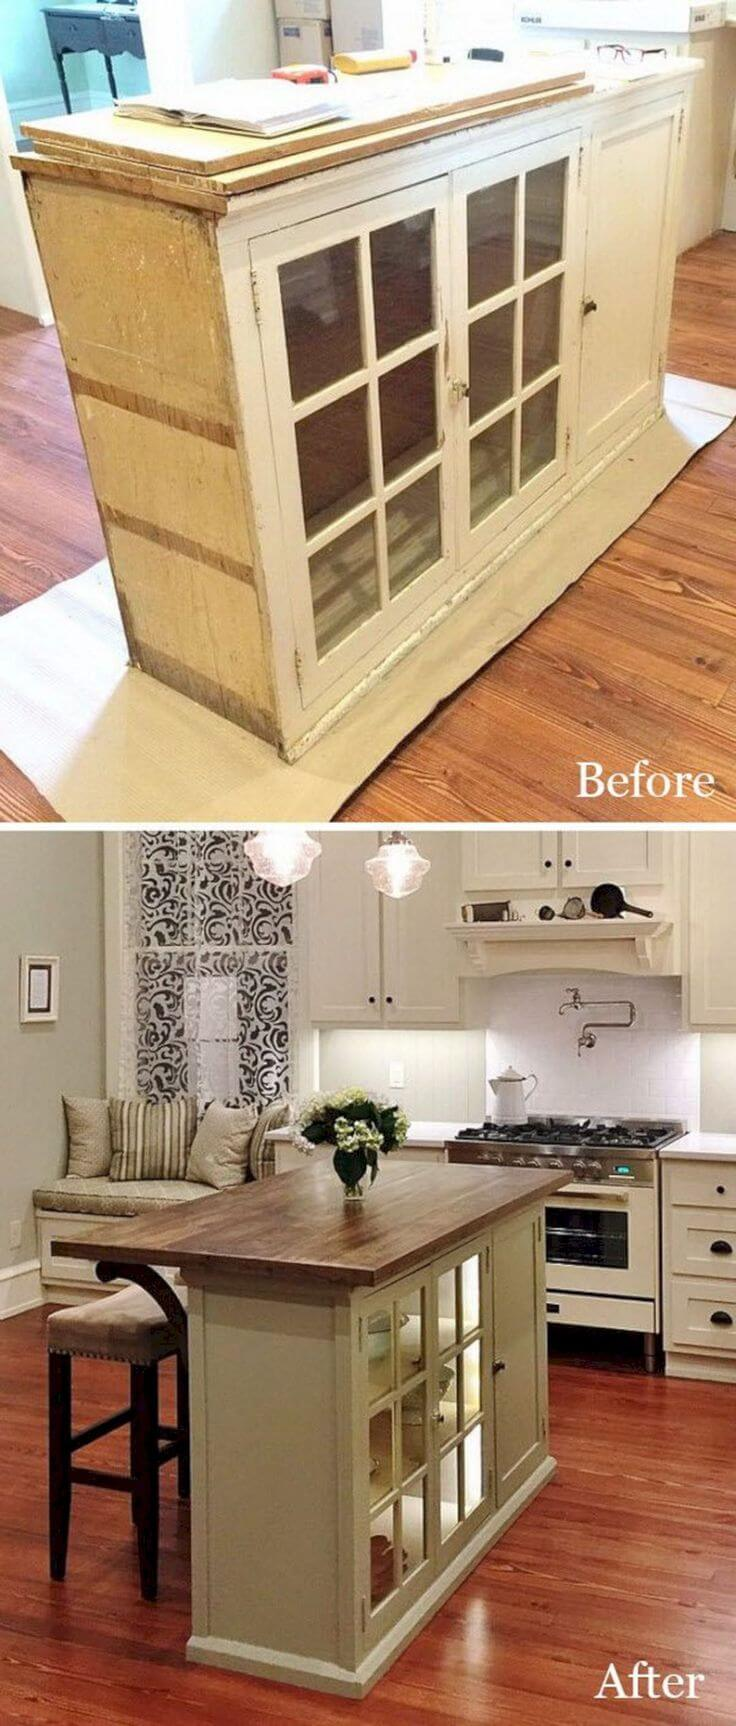 China Cabinet to Kitchen Island Upcycle